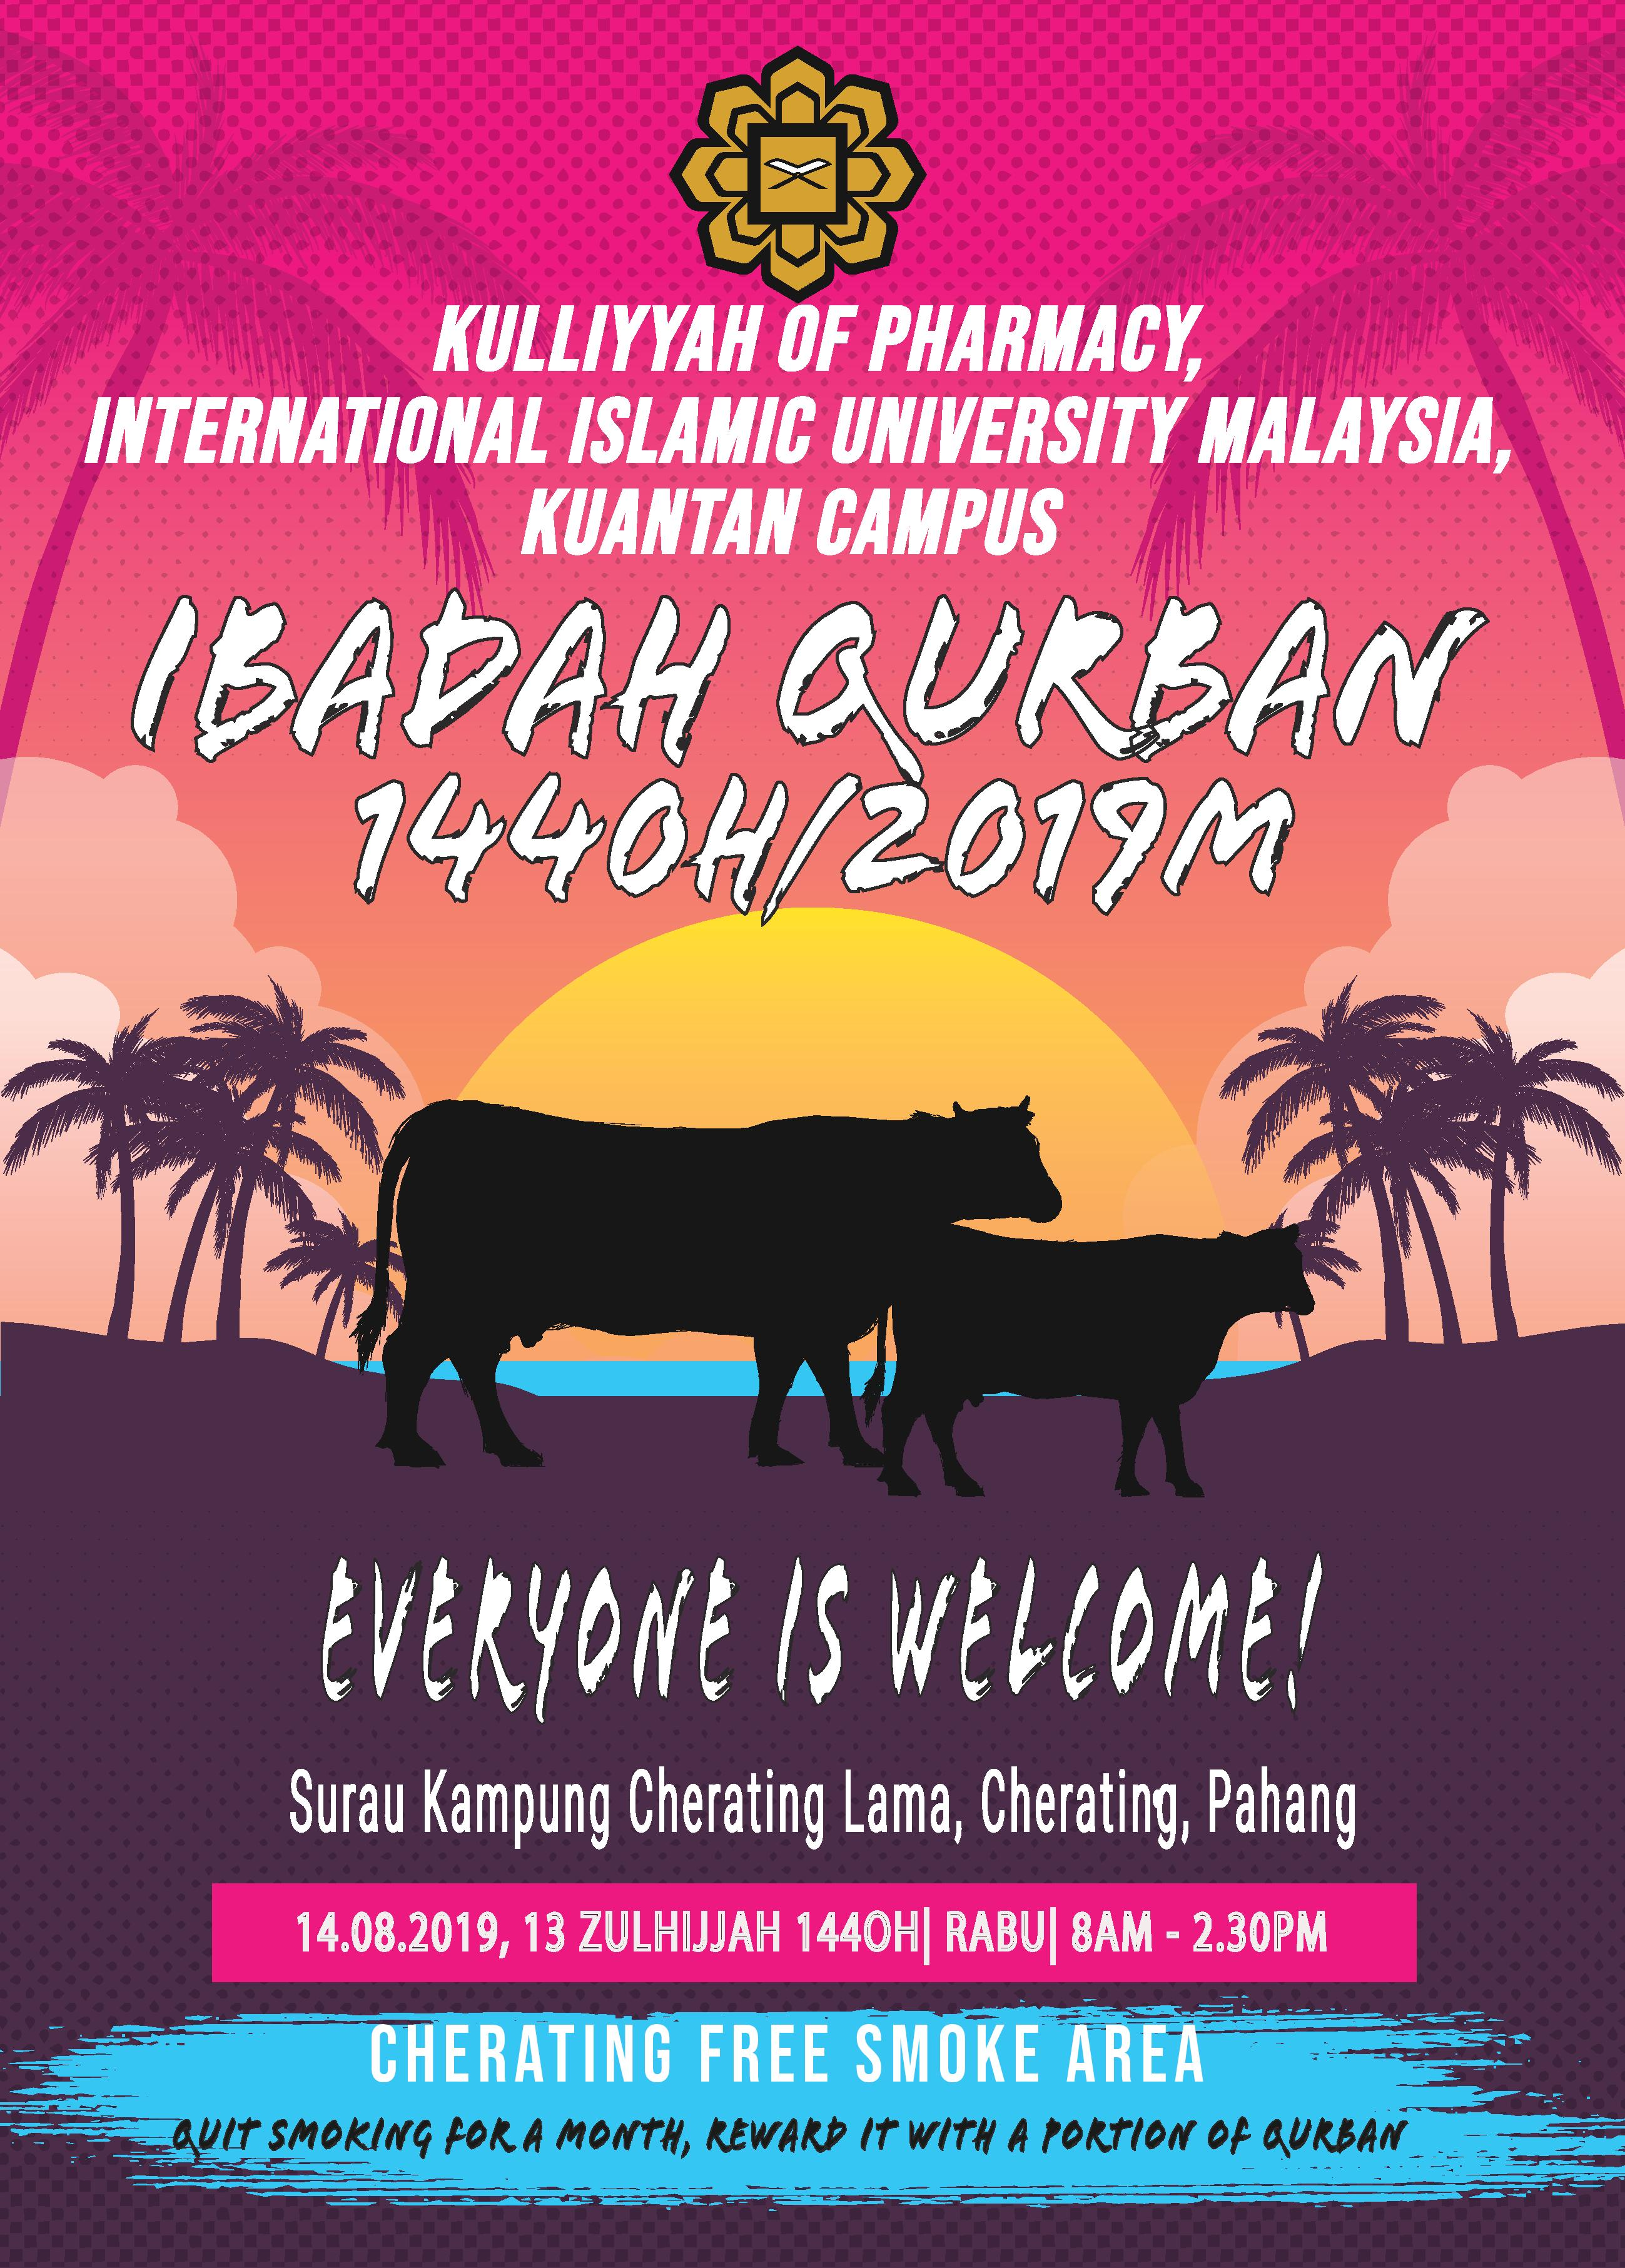 "IBADAH QURBAN PROGRAMME 1440H/2019 IN CONJUNCTION WITH THE KULLIYYAH FLAGSHIP ""SUSTAINABLE SMOKE-FREE CAMPUS"""